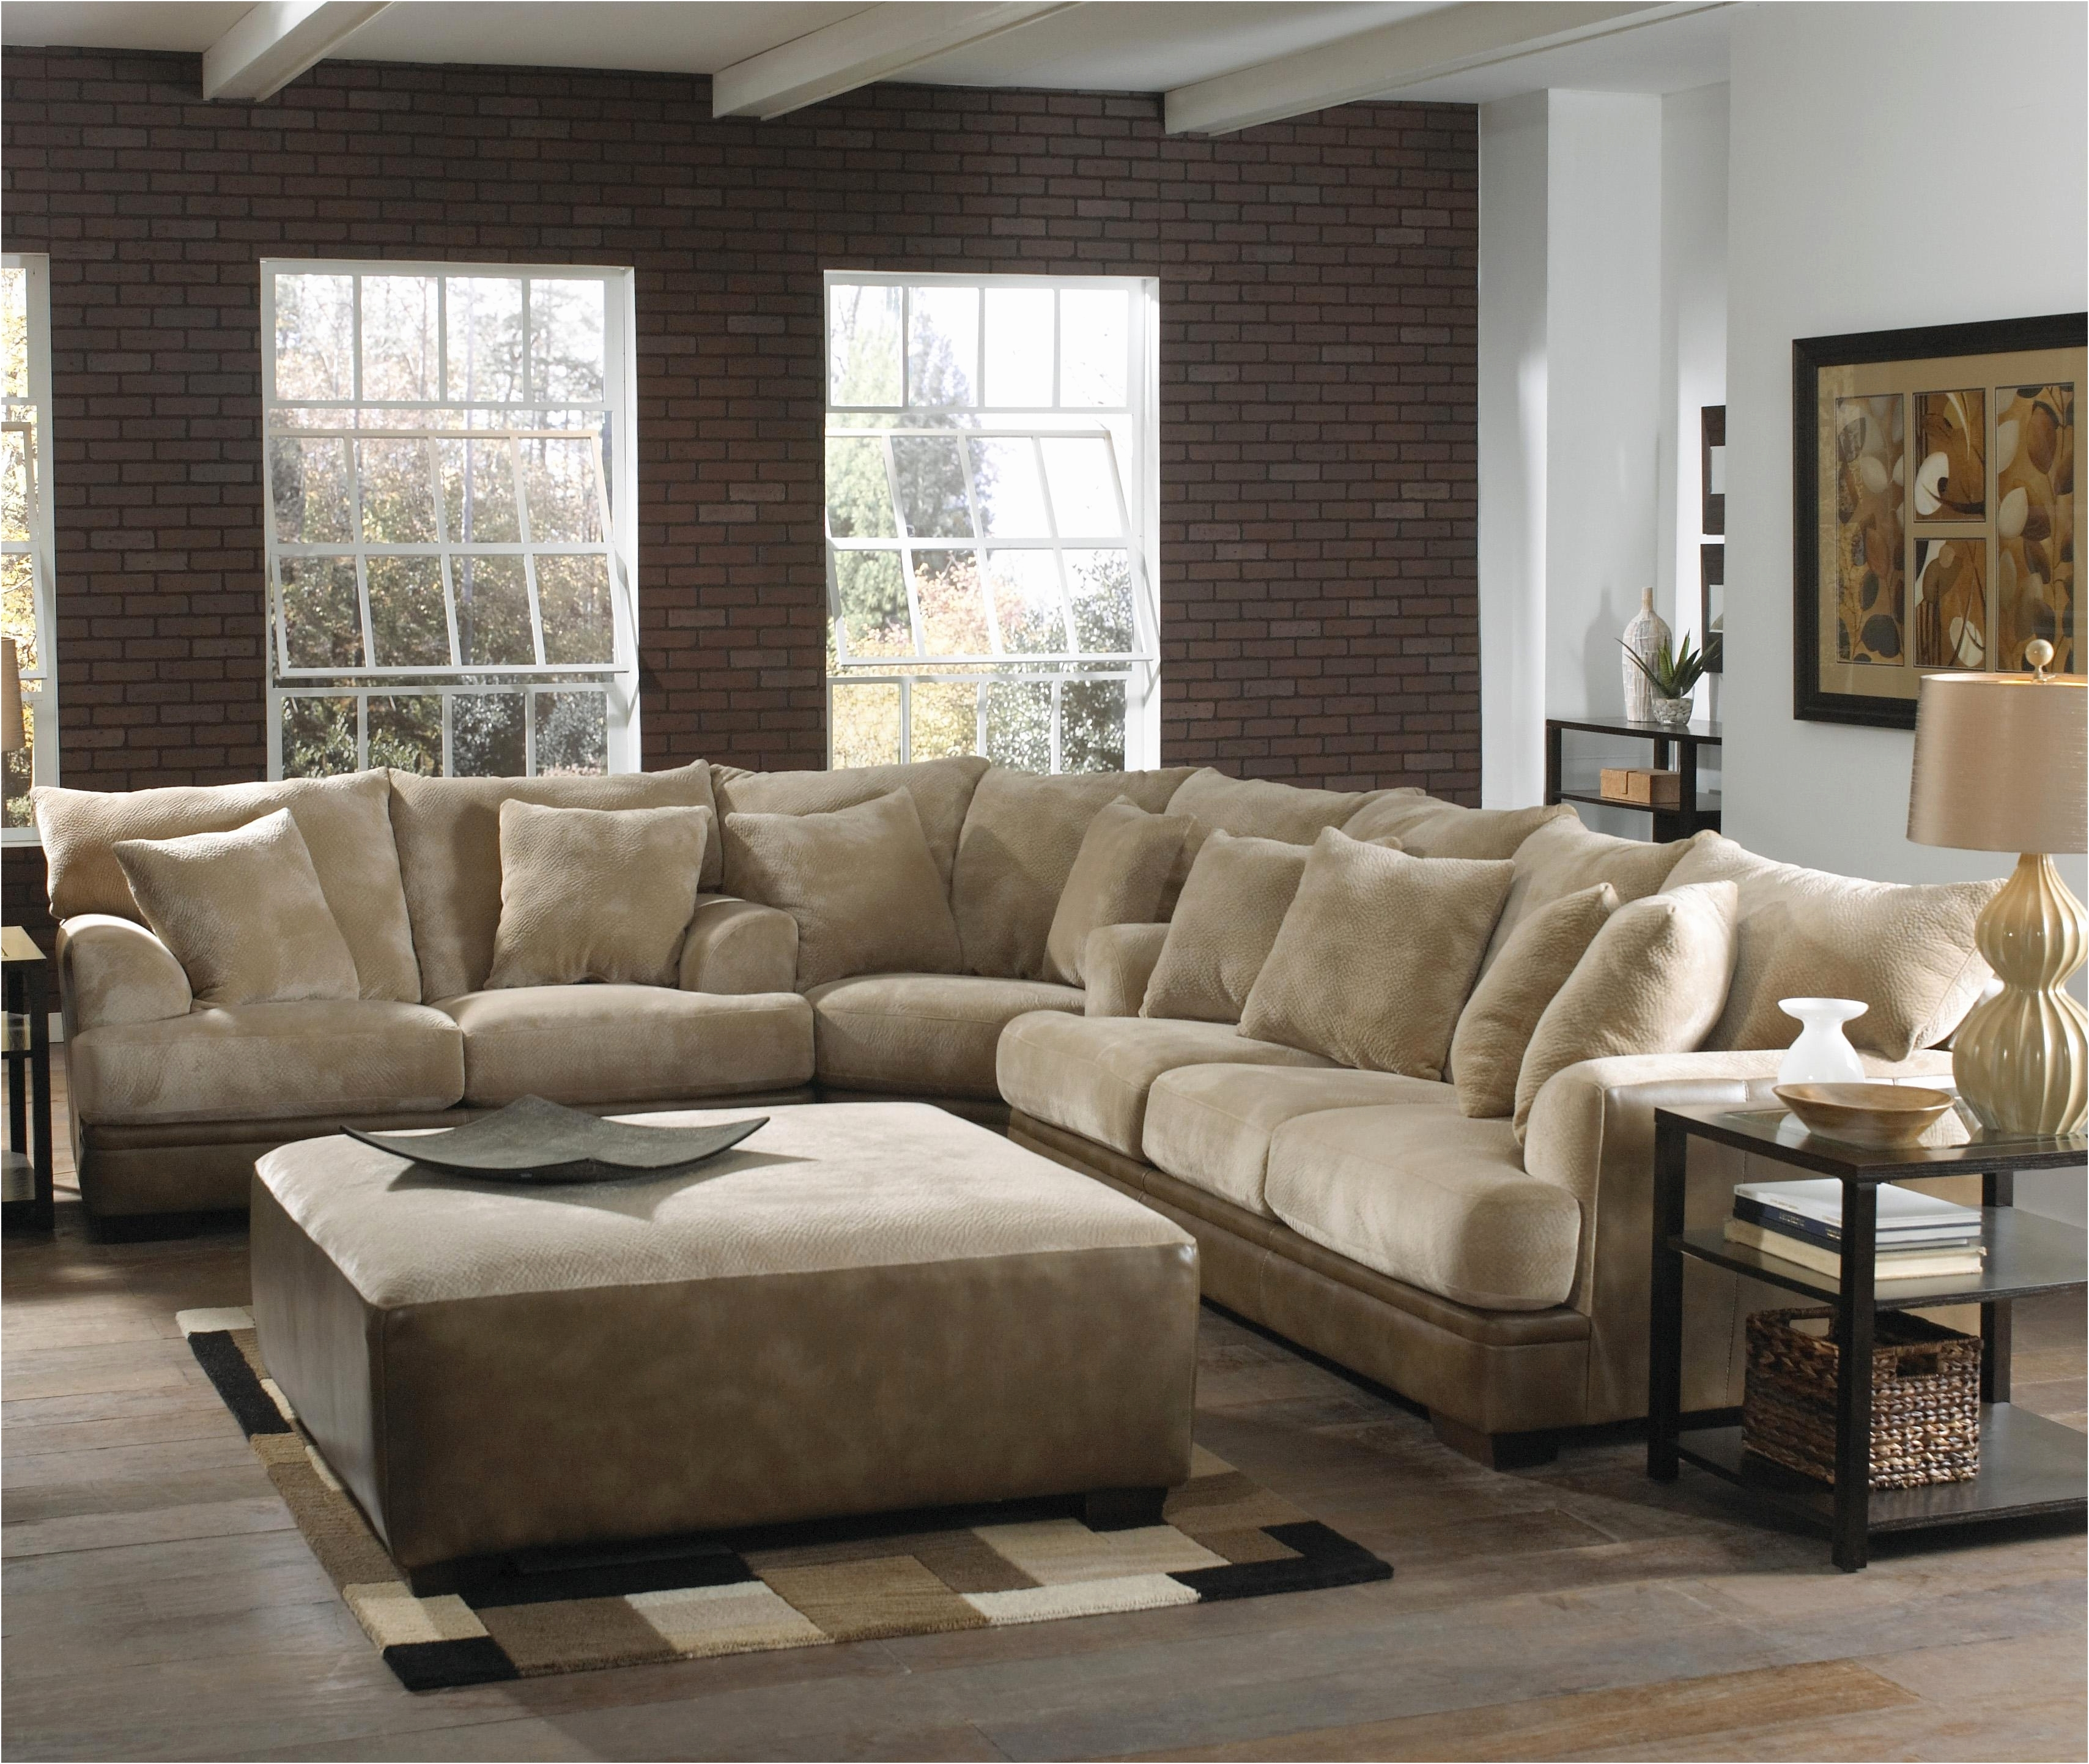 Plush Sectional Sofa Picture Of Sofas Beautiful Kane S Oversized With Plush Sectional Sofas (View 8 of 10)